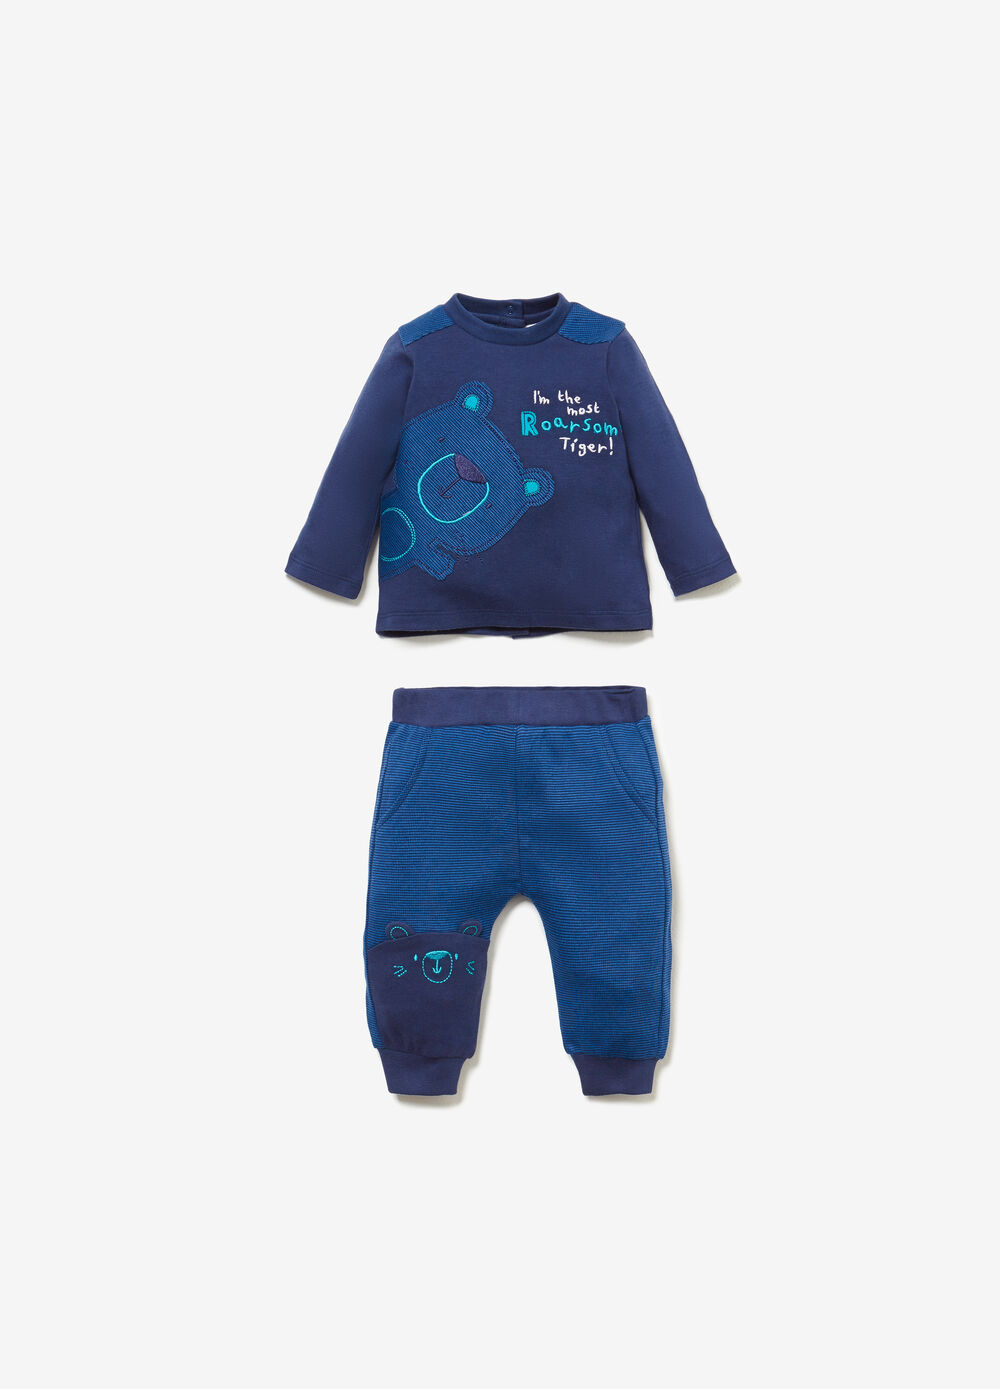 100% cotton outfit with patch and stripes